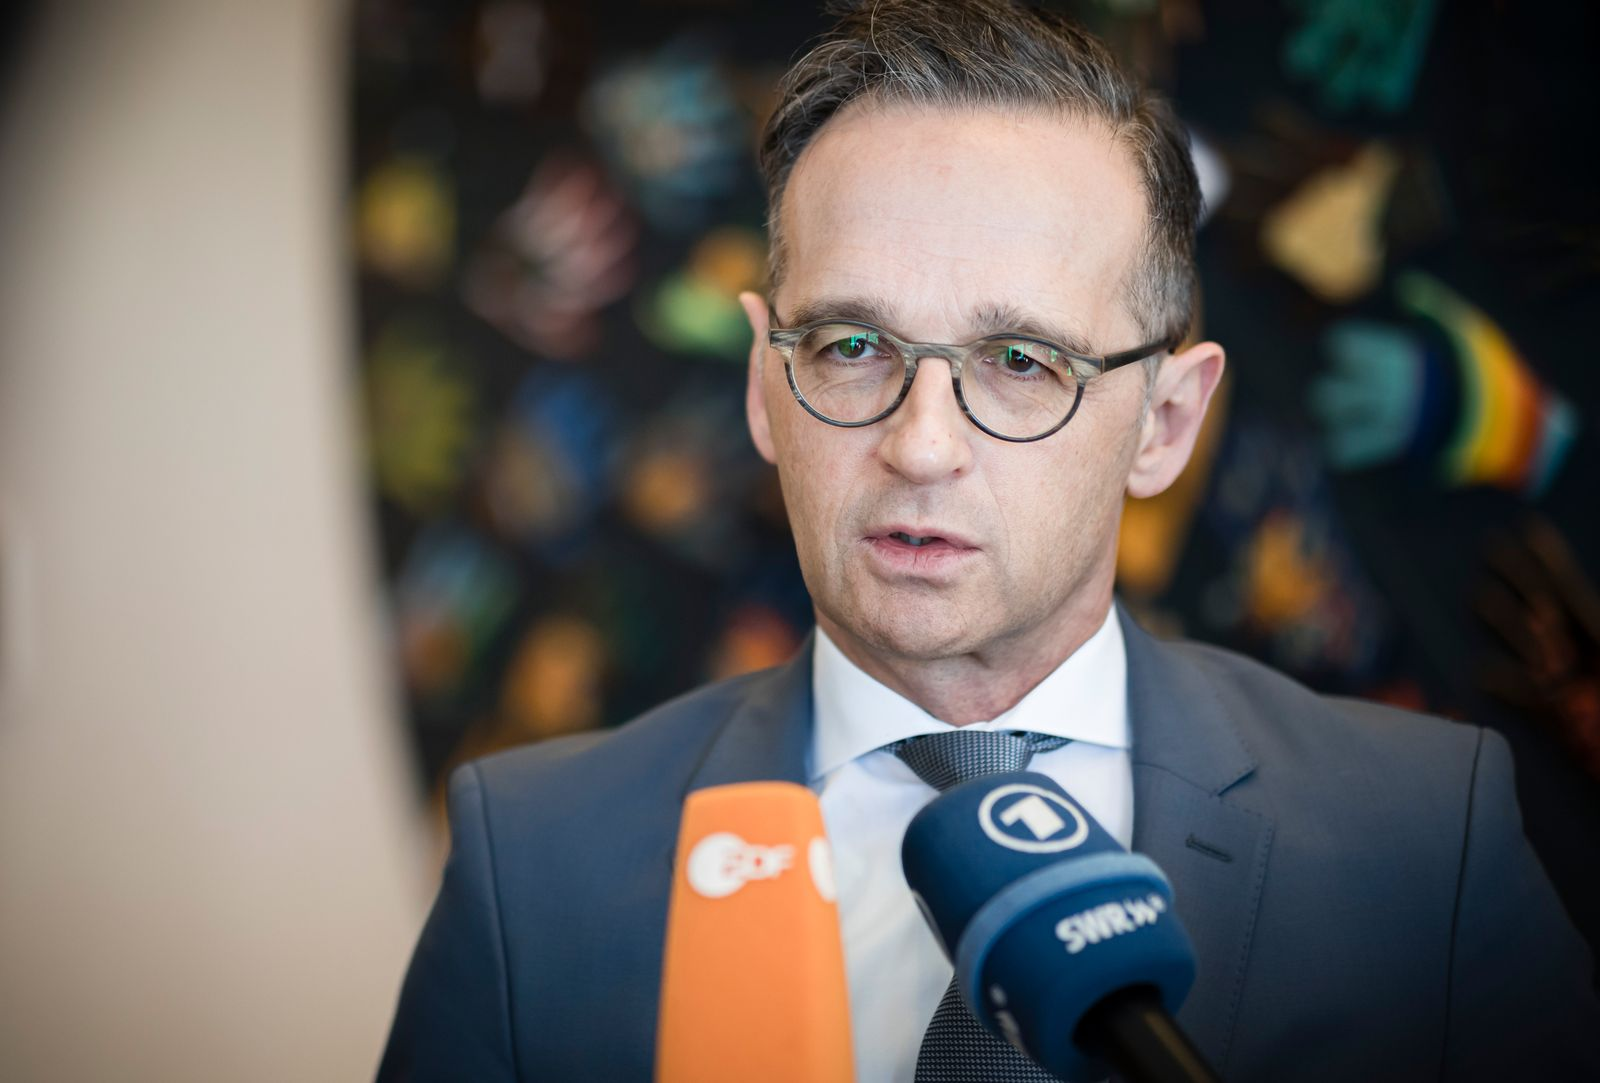 Heiko Maas at Human Rights Council